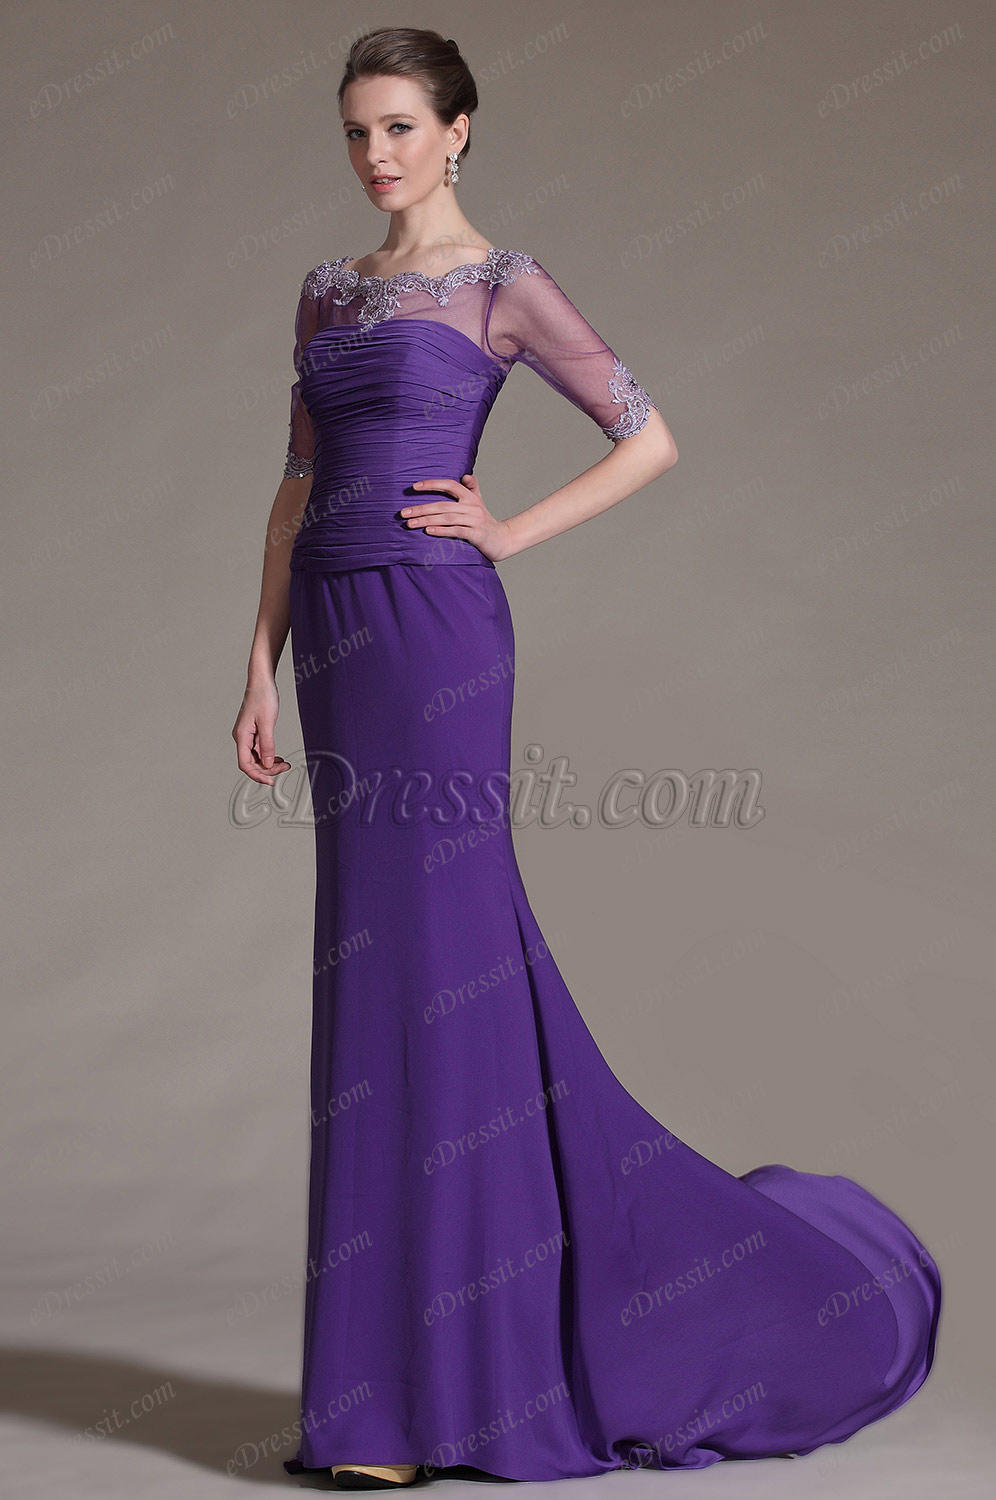 2014 New Purple Lace Neckline Mother of the Bride Dress 26146806 Mother Of The Mother Of The Bride Dresses With Scarf